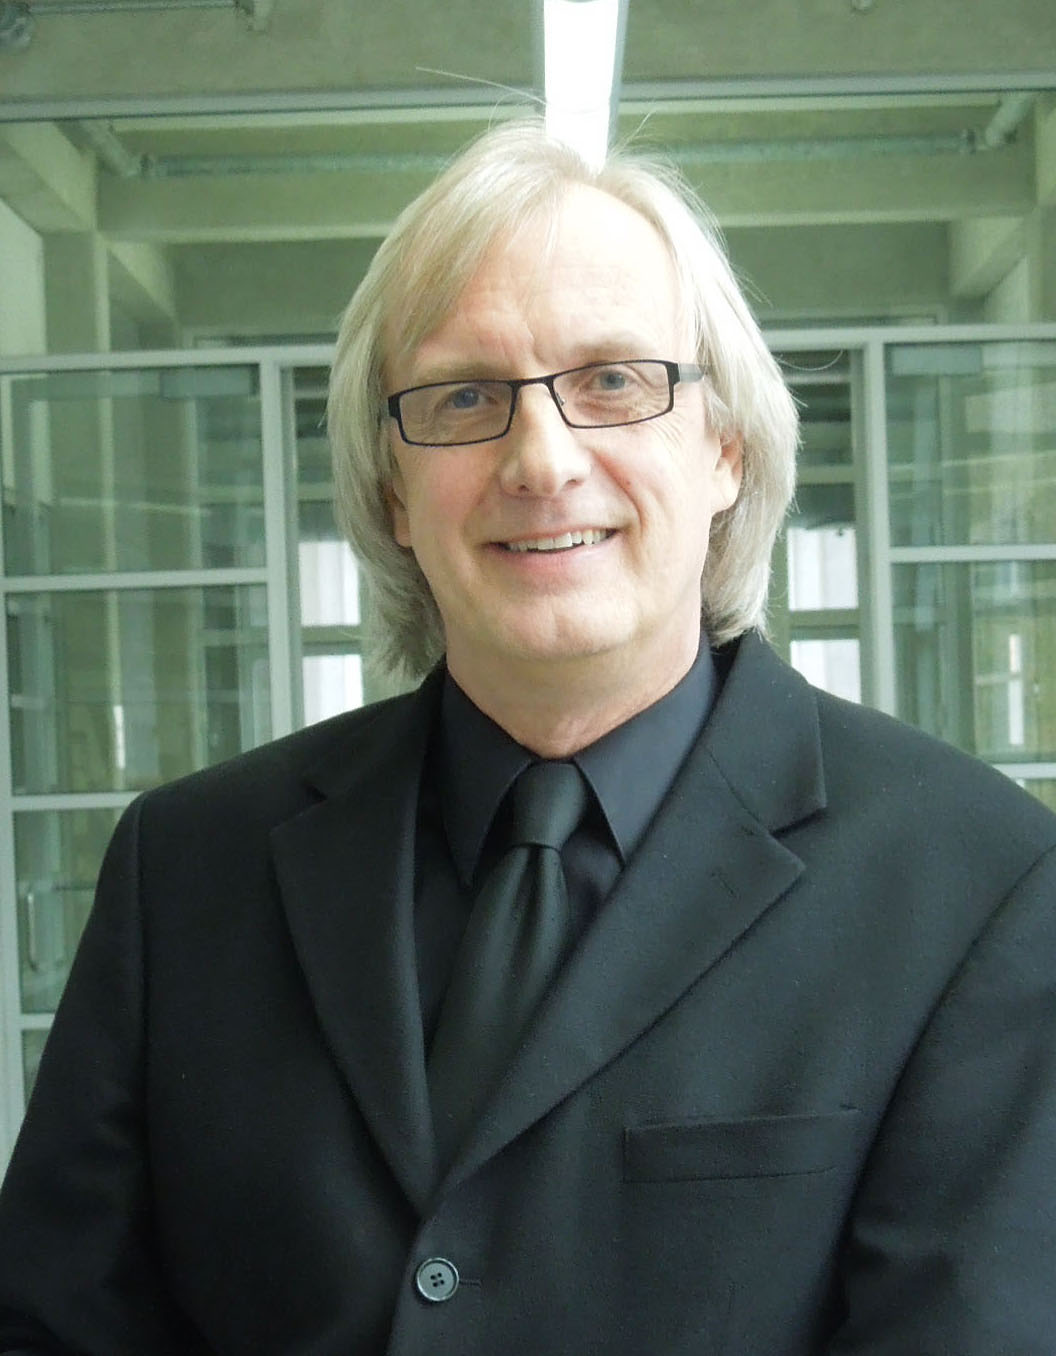 UWM Dean elected a Royal Institute of British Architects fellow